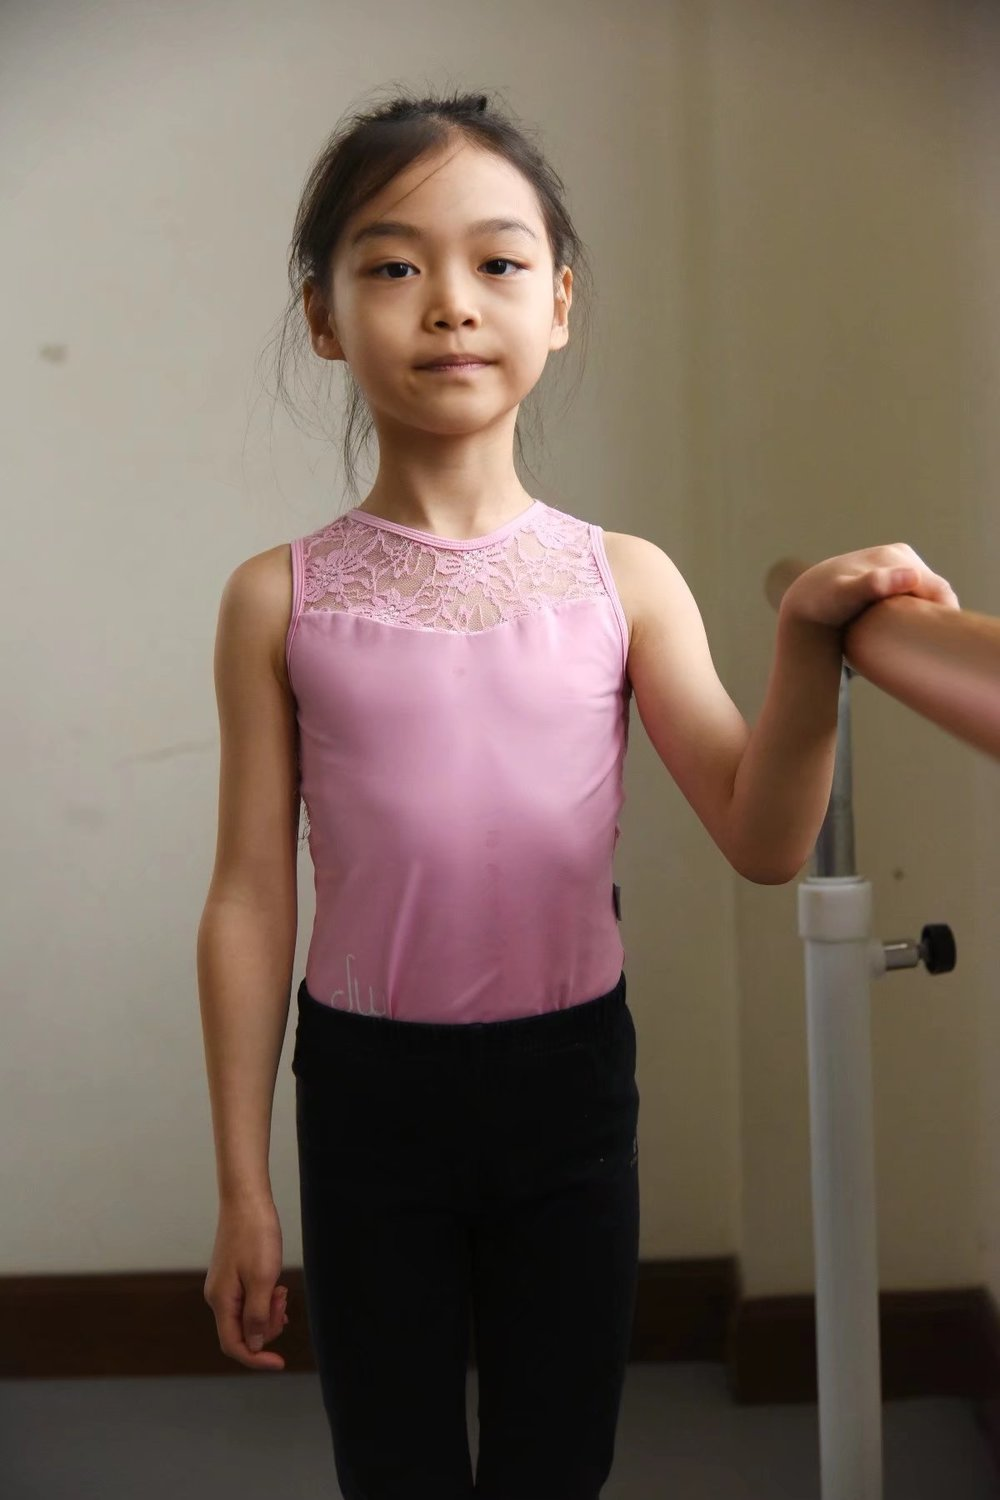 Emily   Emily started dancing when she was 4 years old. After joining DWS for 2 years, dancing has become more and more important and essential to her. She loves animals and flowers.